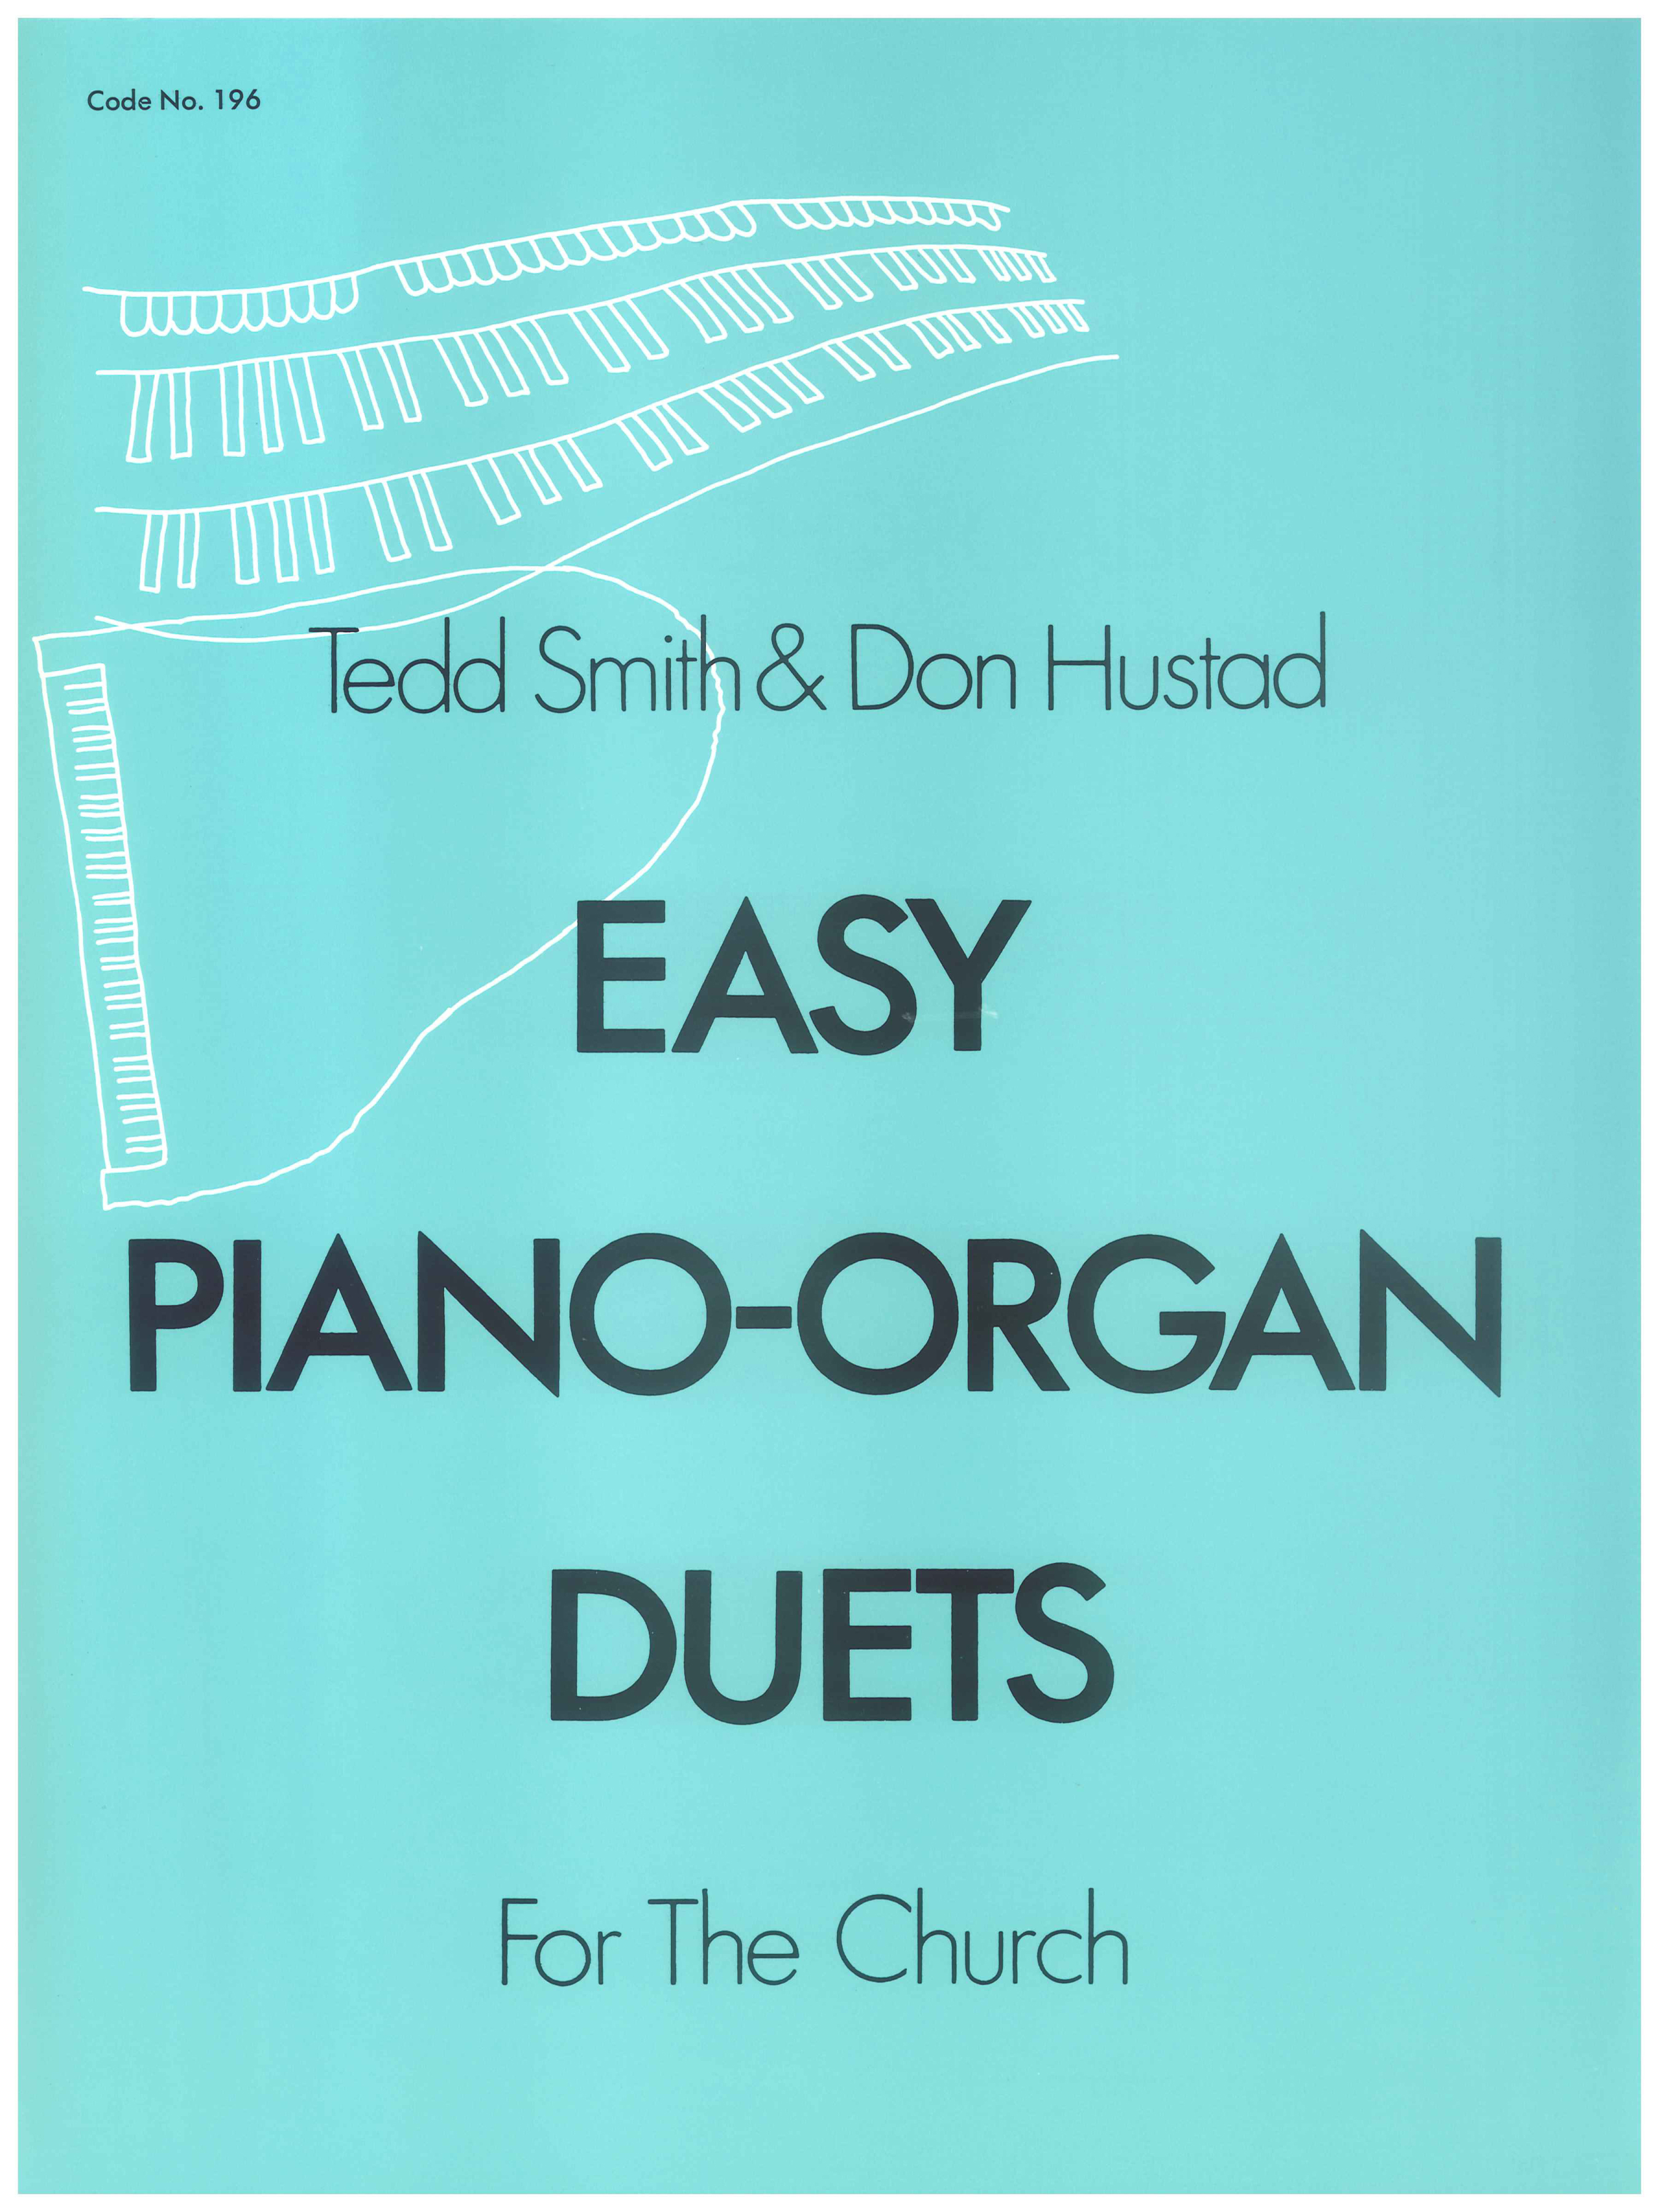 Easy Piano-Organ Duets Cover Image